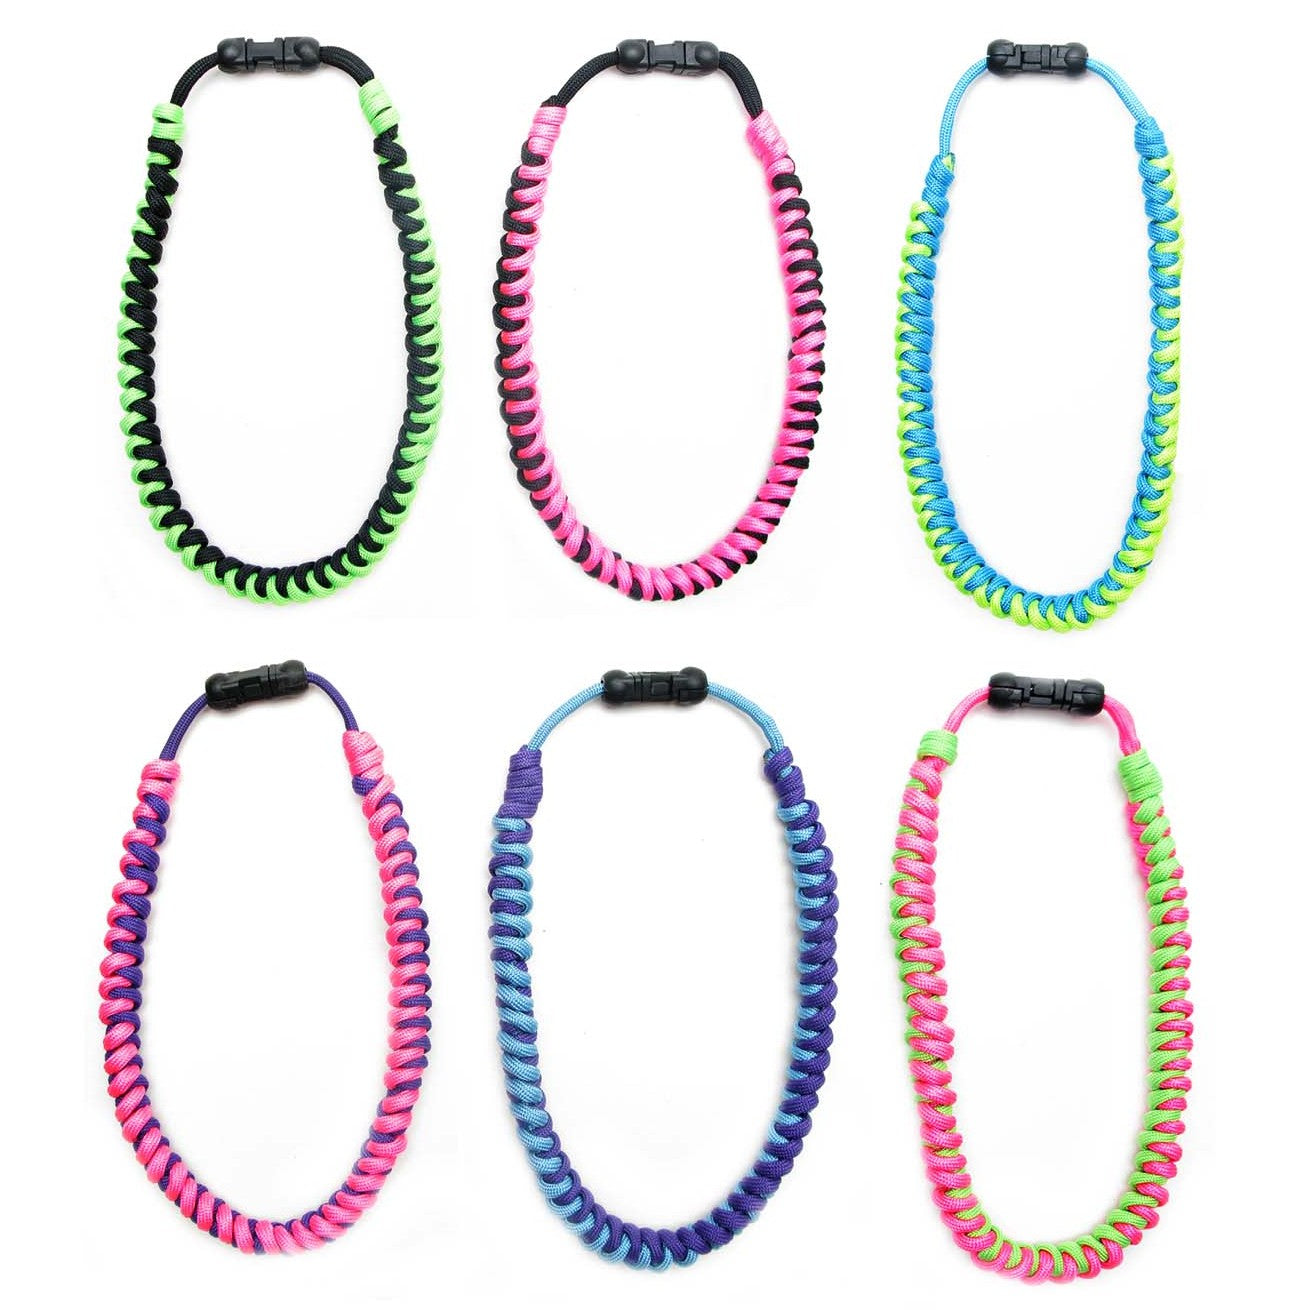 BLC1159N-G 2-Tone Twisted Braid Paracord Necklace ''Girl Colors'' - 12 Pcs Pack Unit